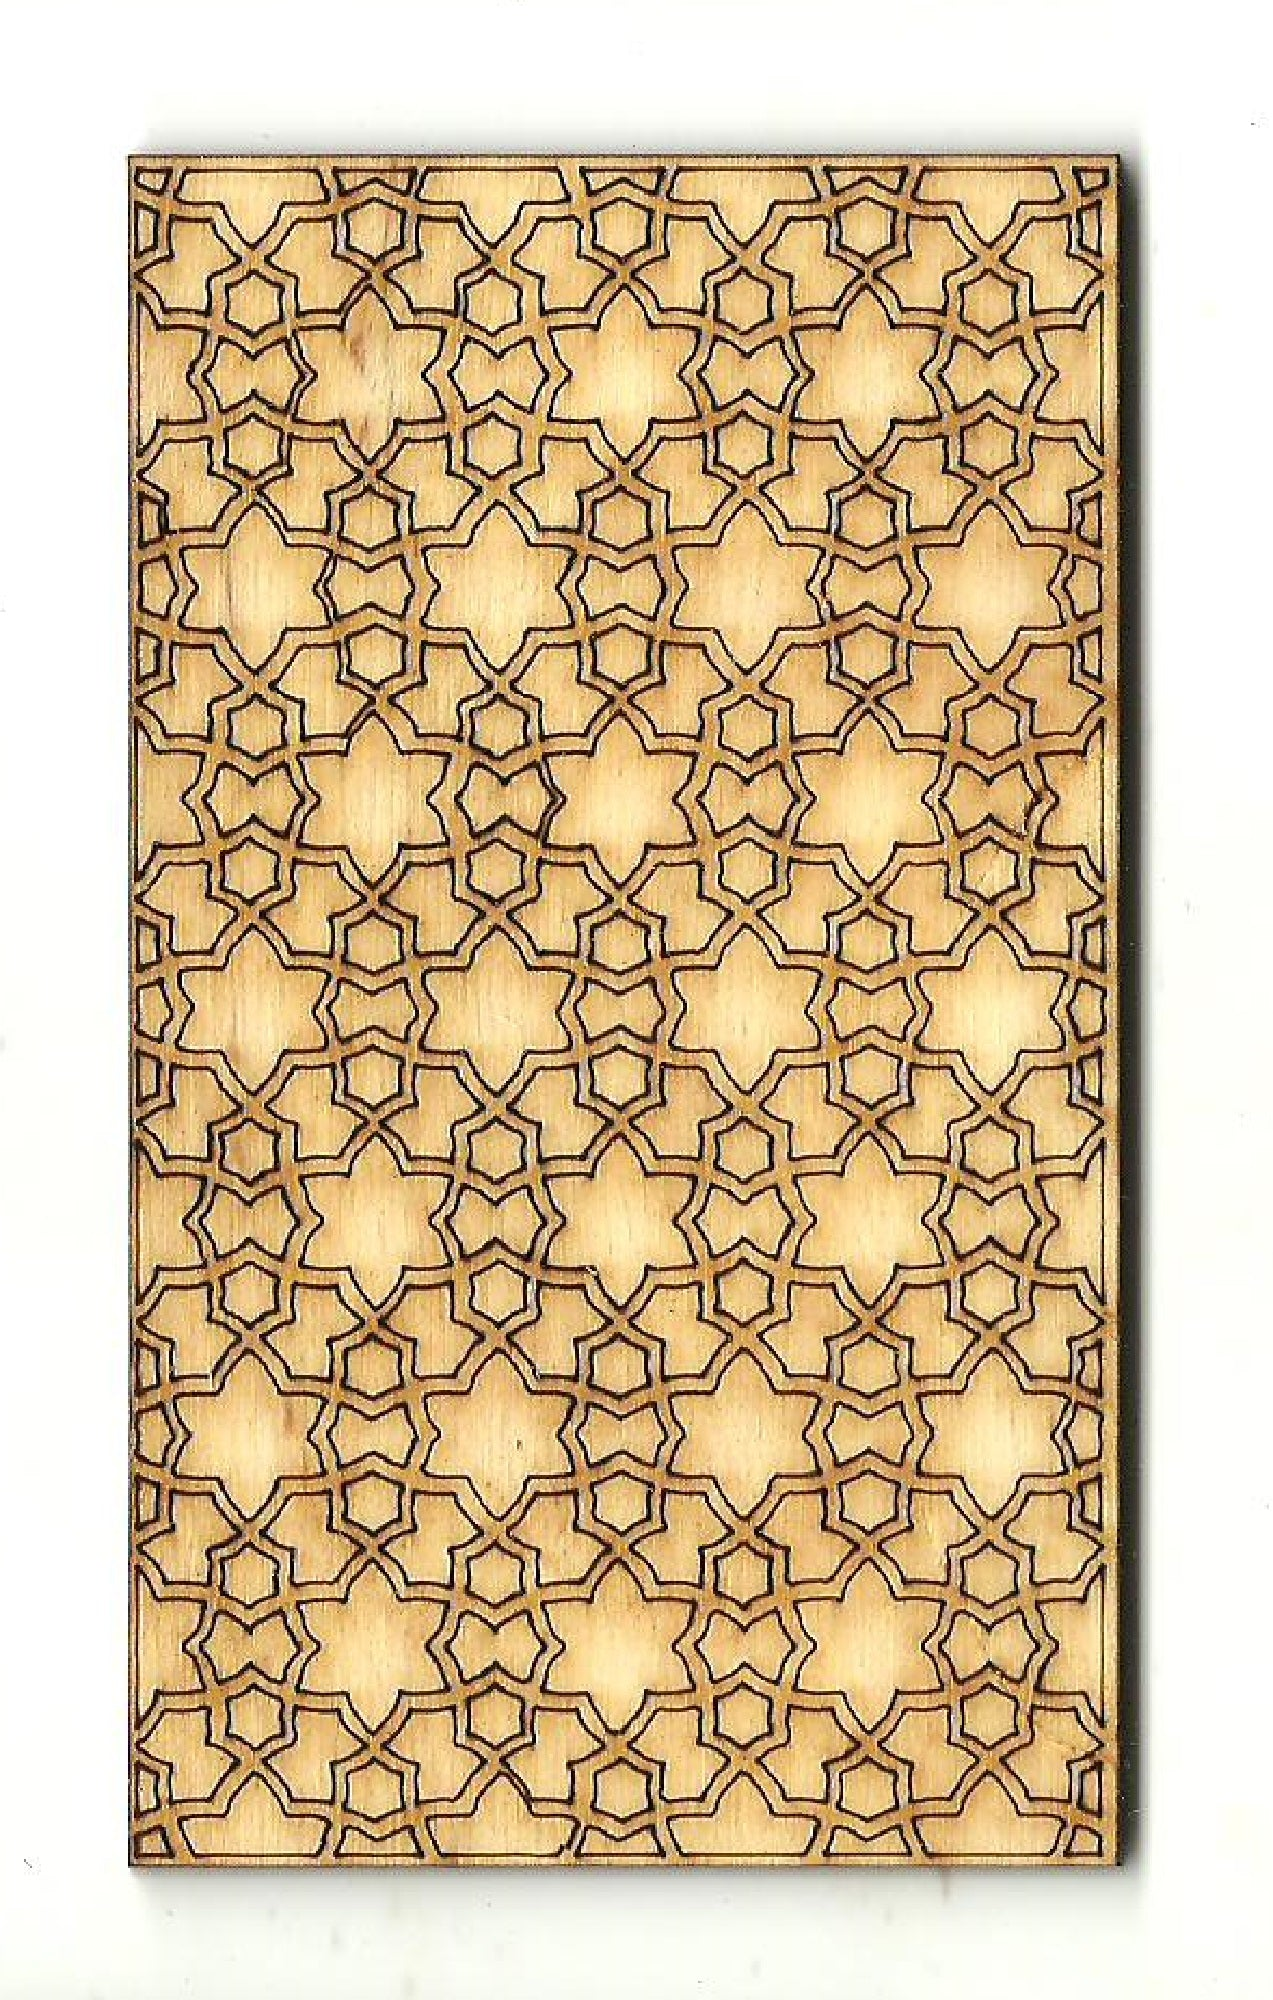 Panel Design - Laser Cut Wood Shape DSN123